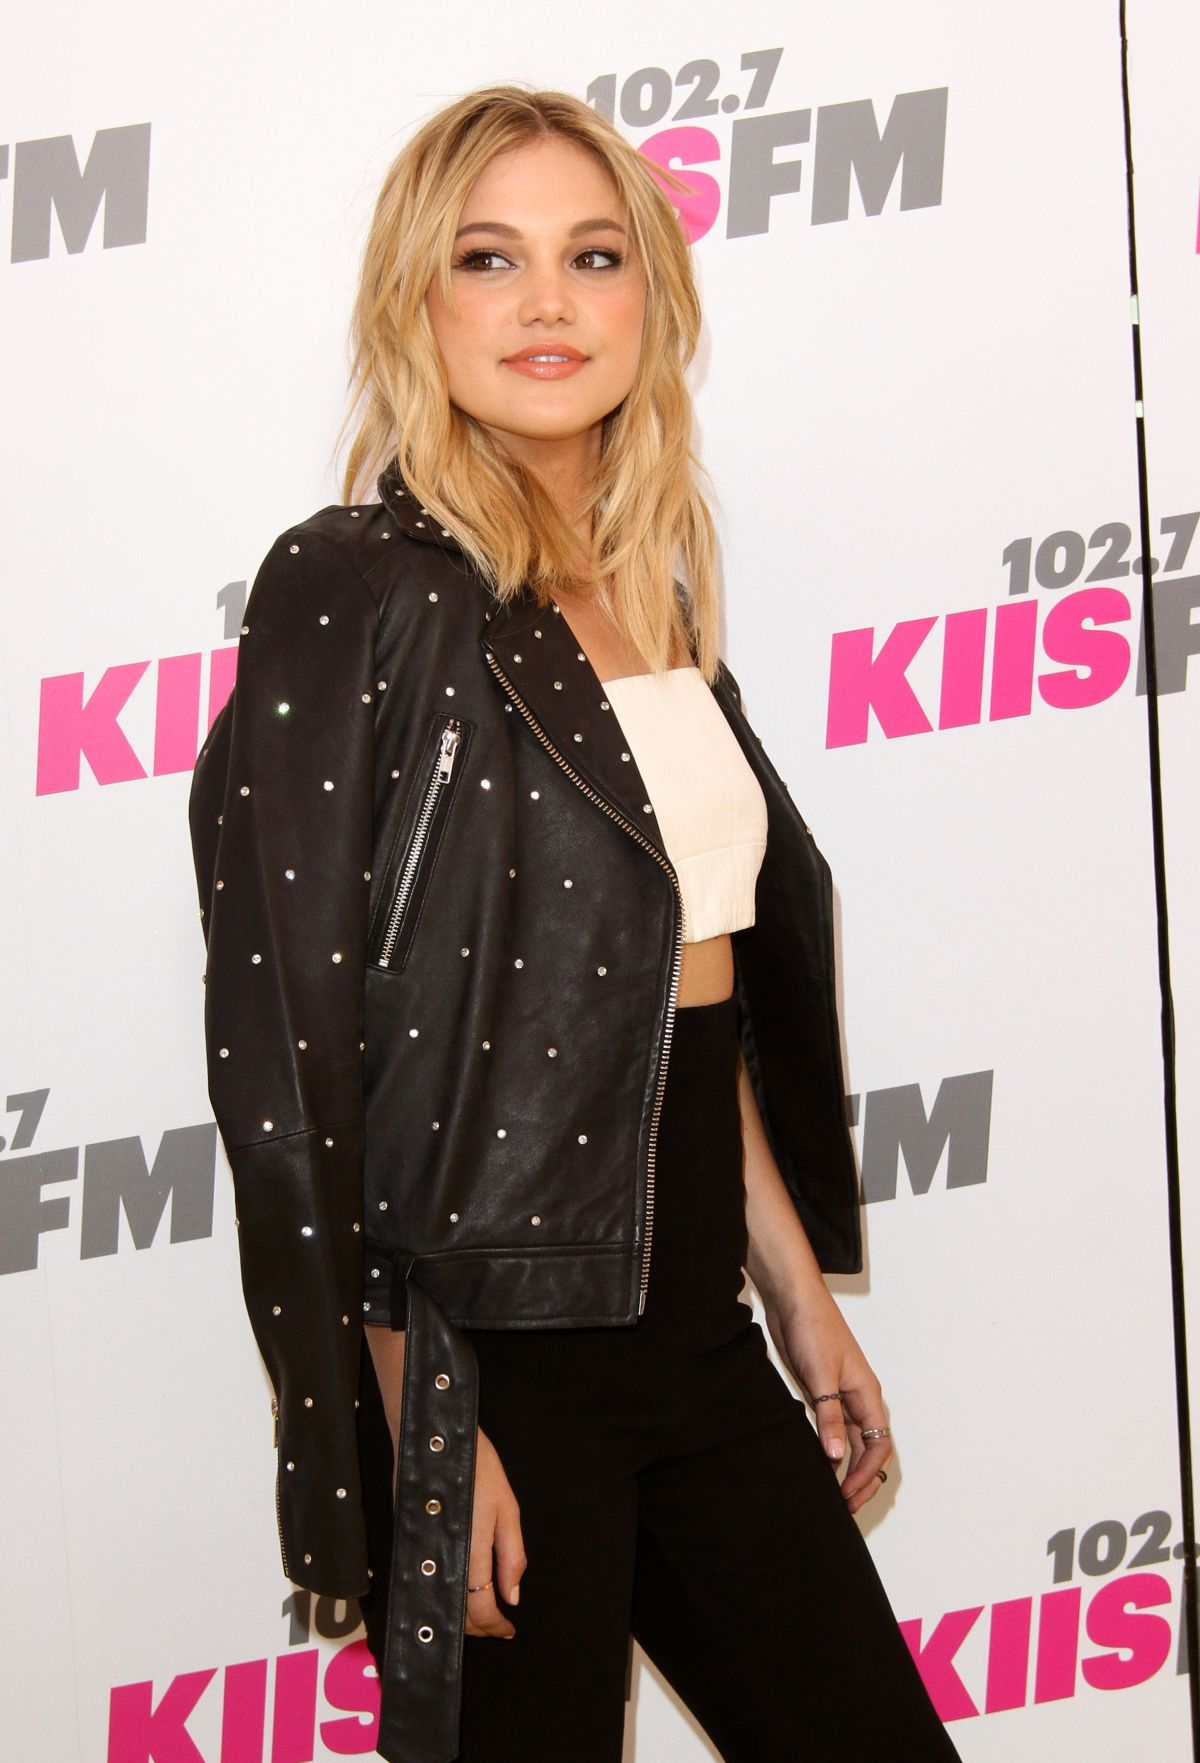 OLIVIA HOLT at 102.7 Kiis FM's 2017 Wango Tango in Carson 05/13/2017